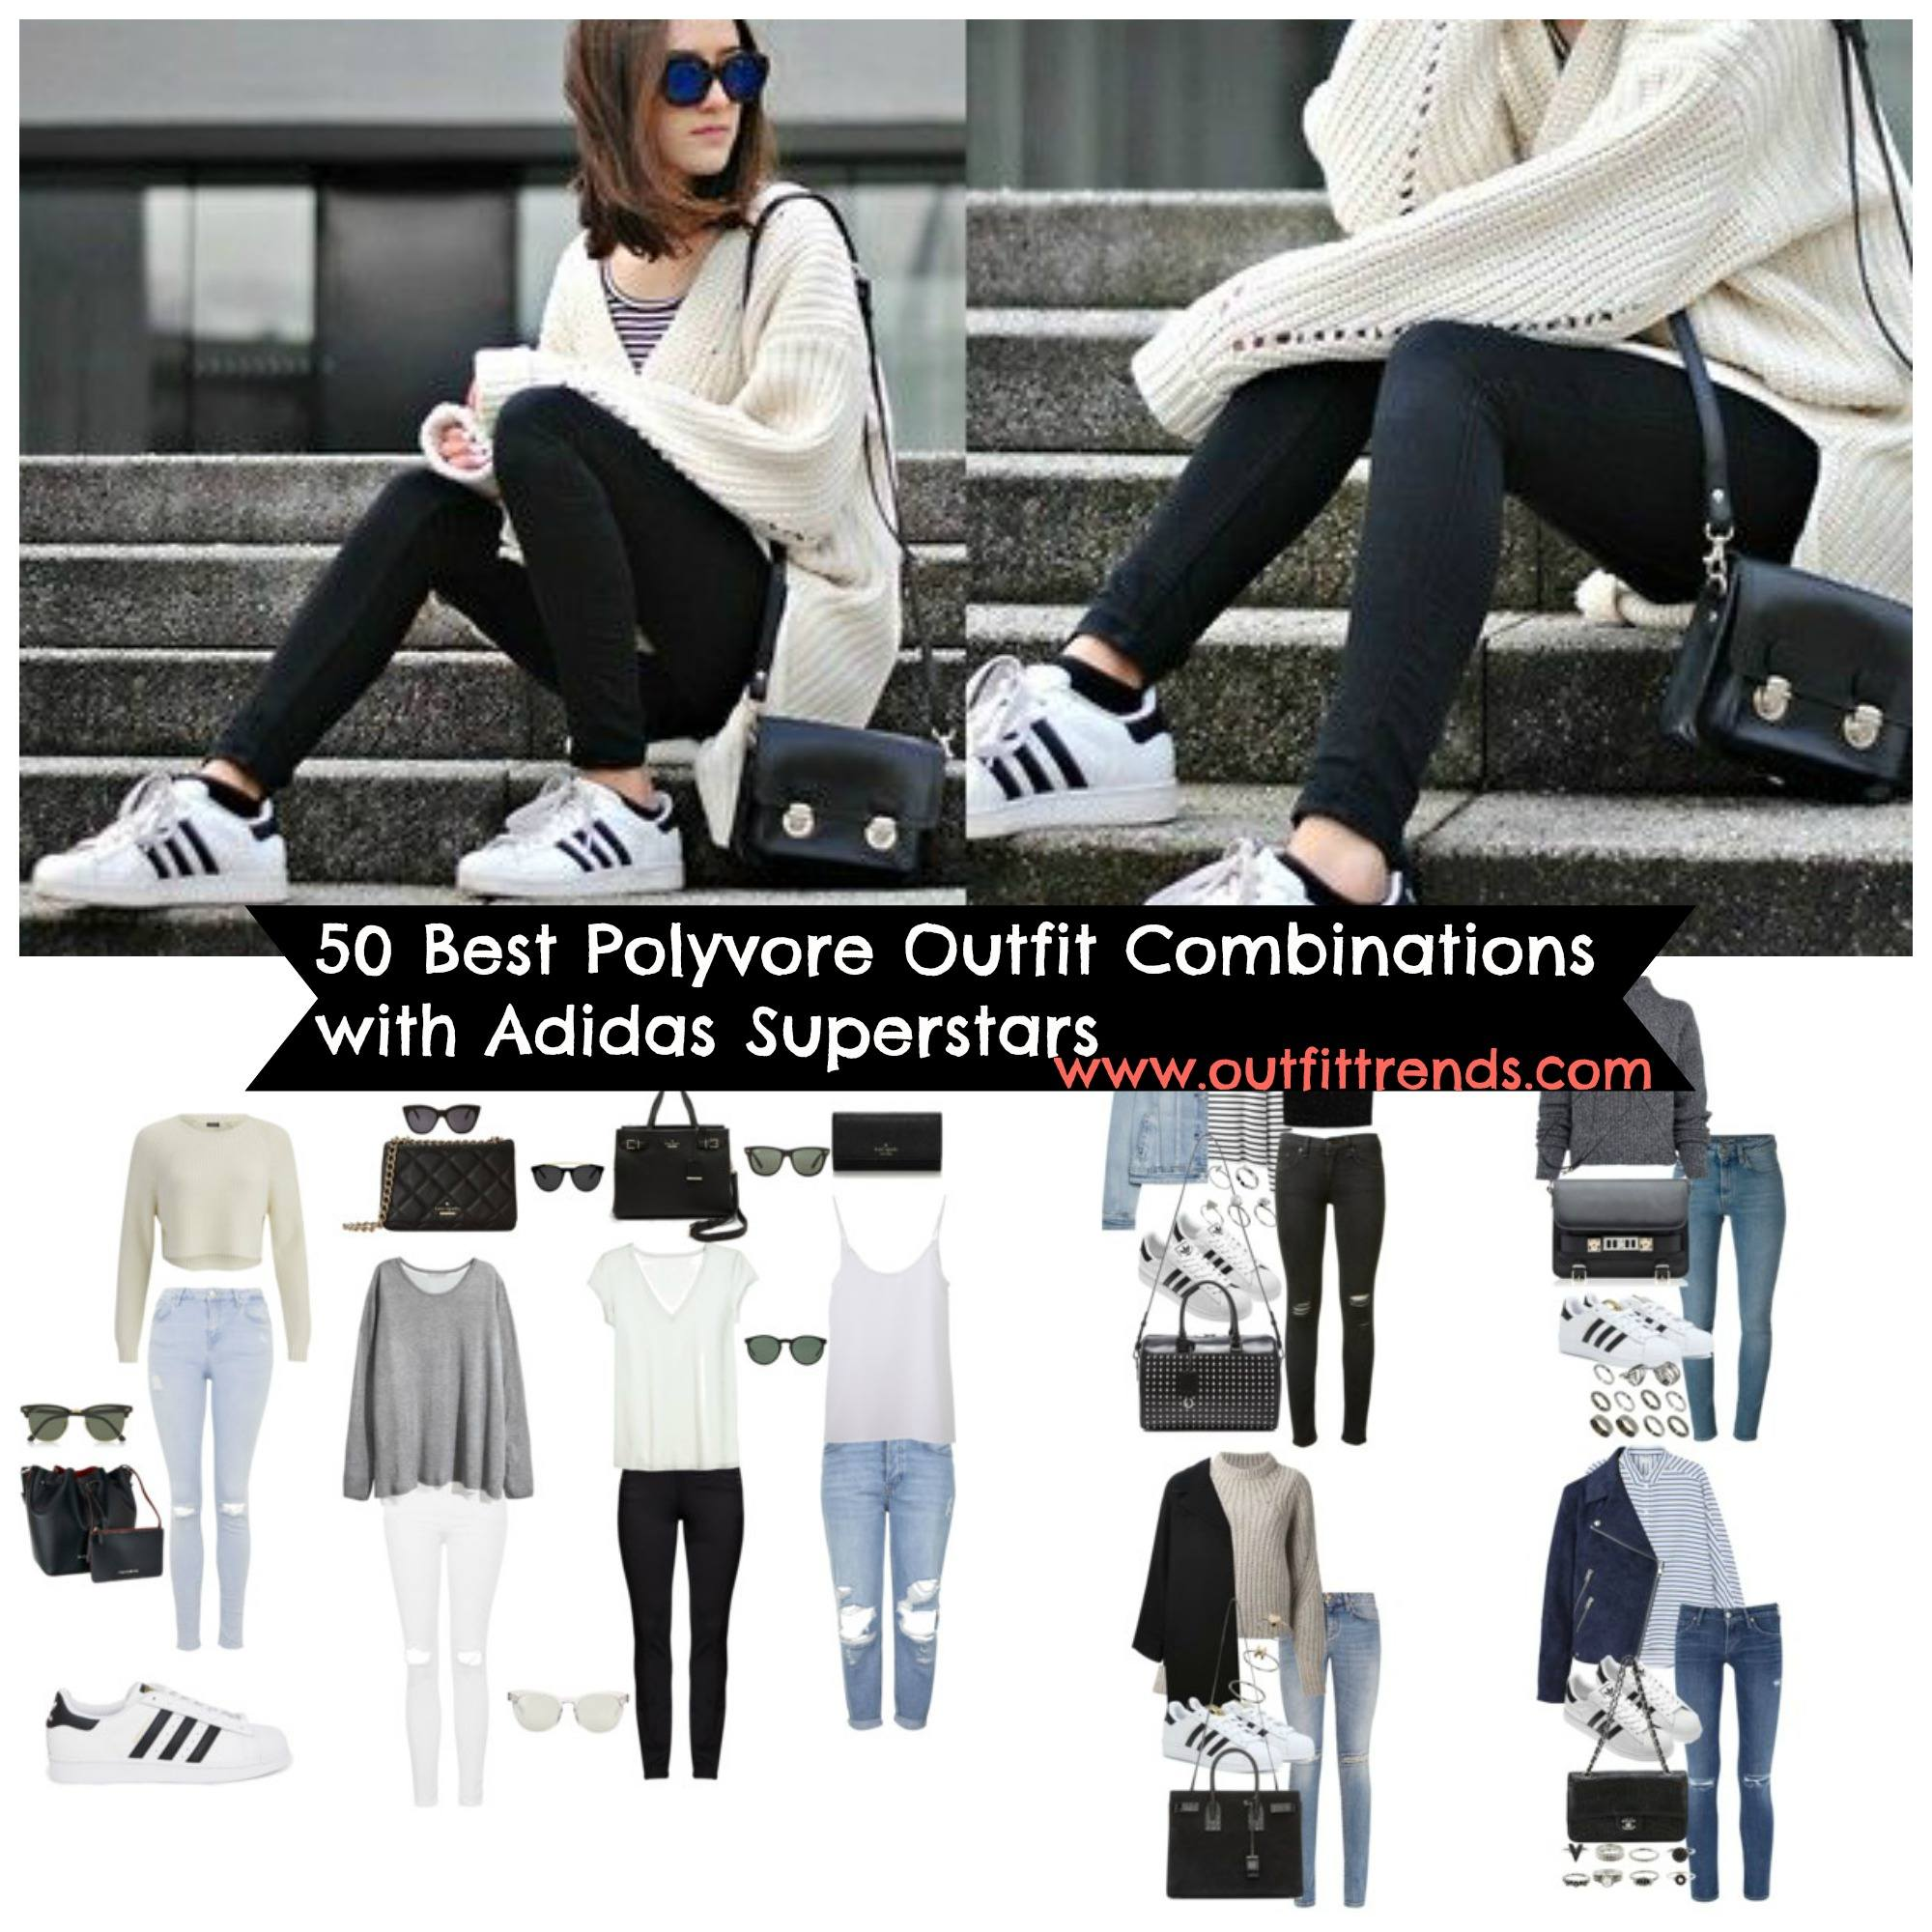 polyvore-outfits-with-adidas-superstars-for-women 50 Best Polyvore Outfits with Adidas Superstars for Girls to Copy